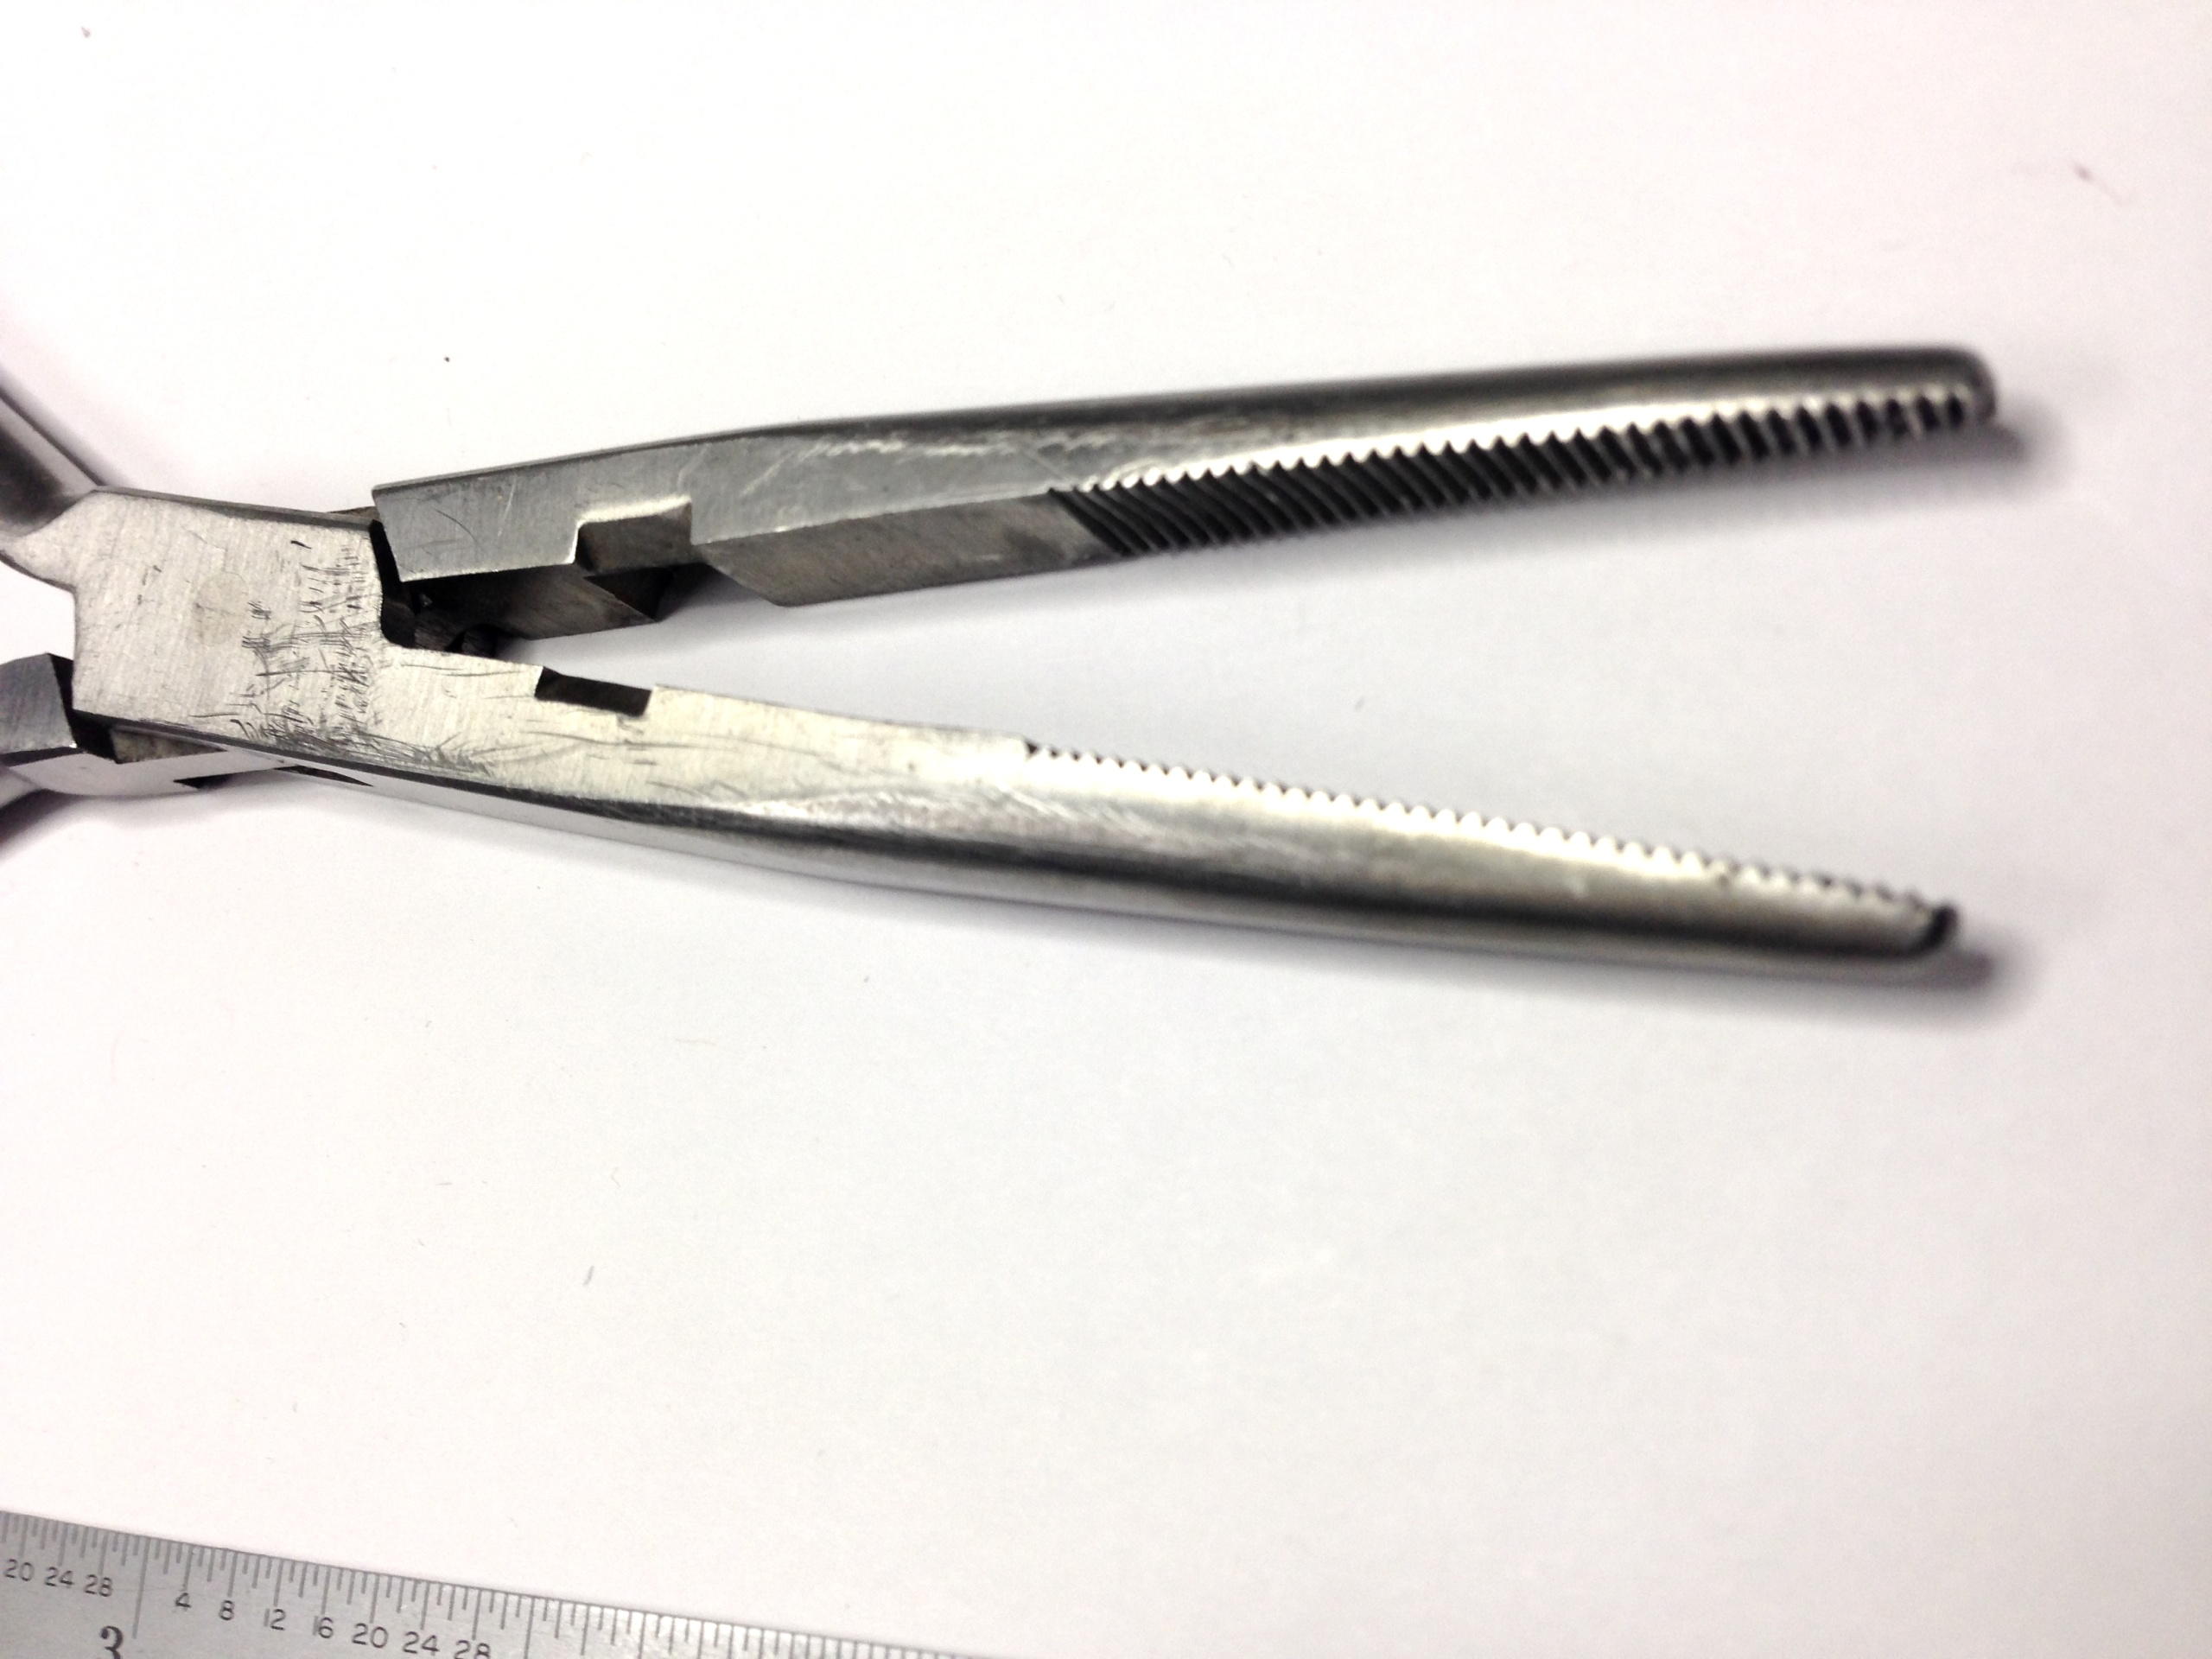 Click image for larger version.  Name:Surgical Pliers-2.jpg Views:9 Size:887.8 KB ID:57124